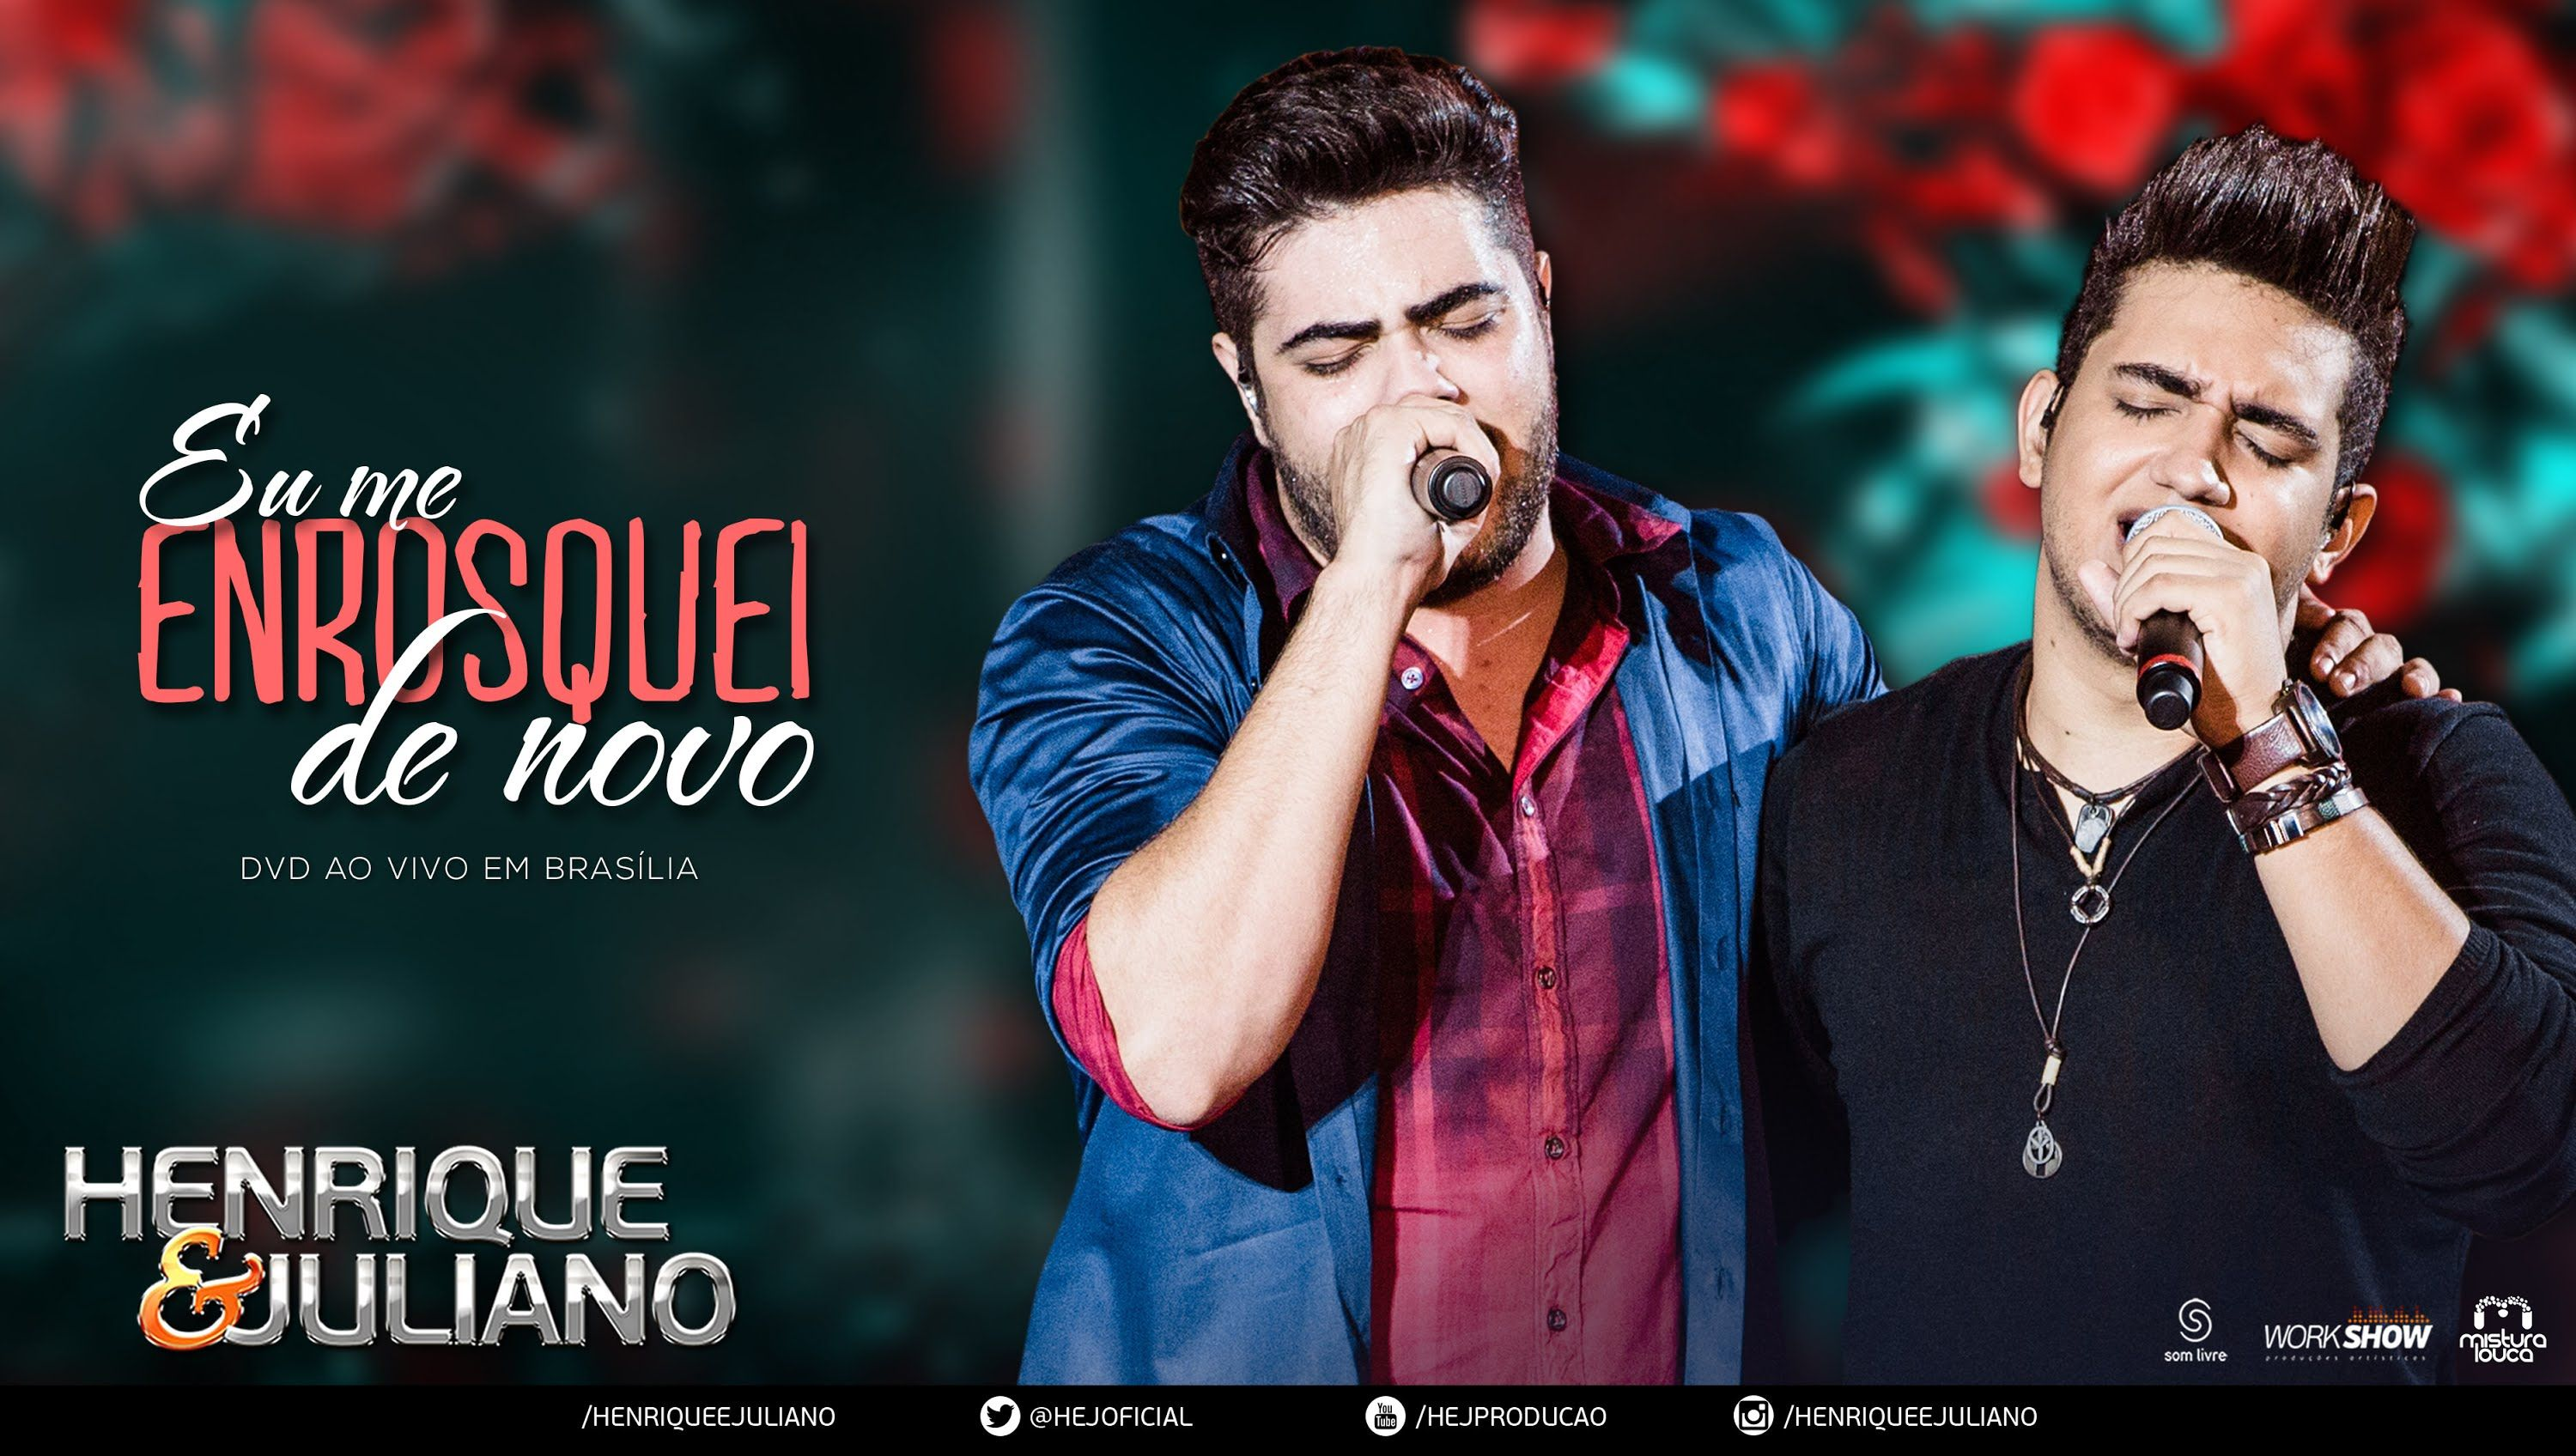 Sertanejo O Melhor Do Sertanejo Juliano Henrique Juliano